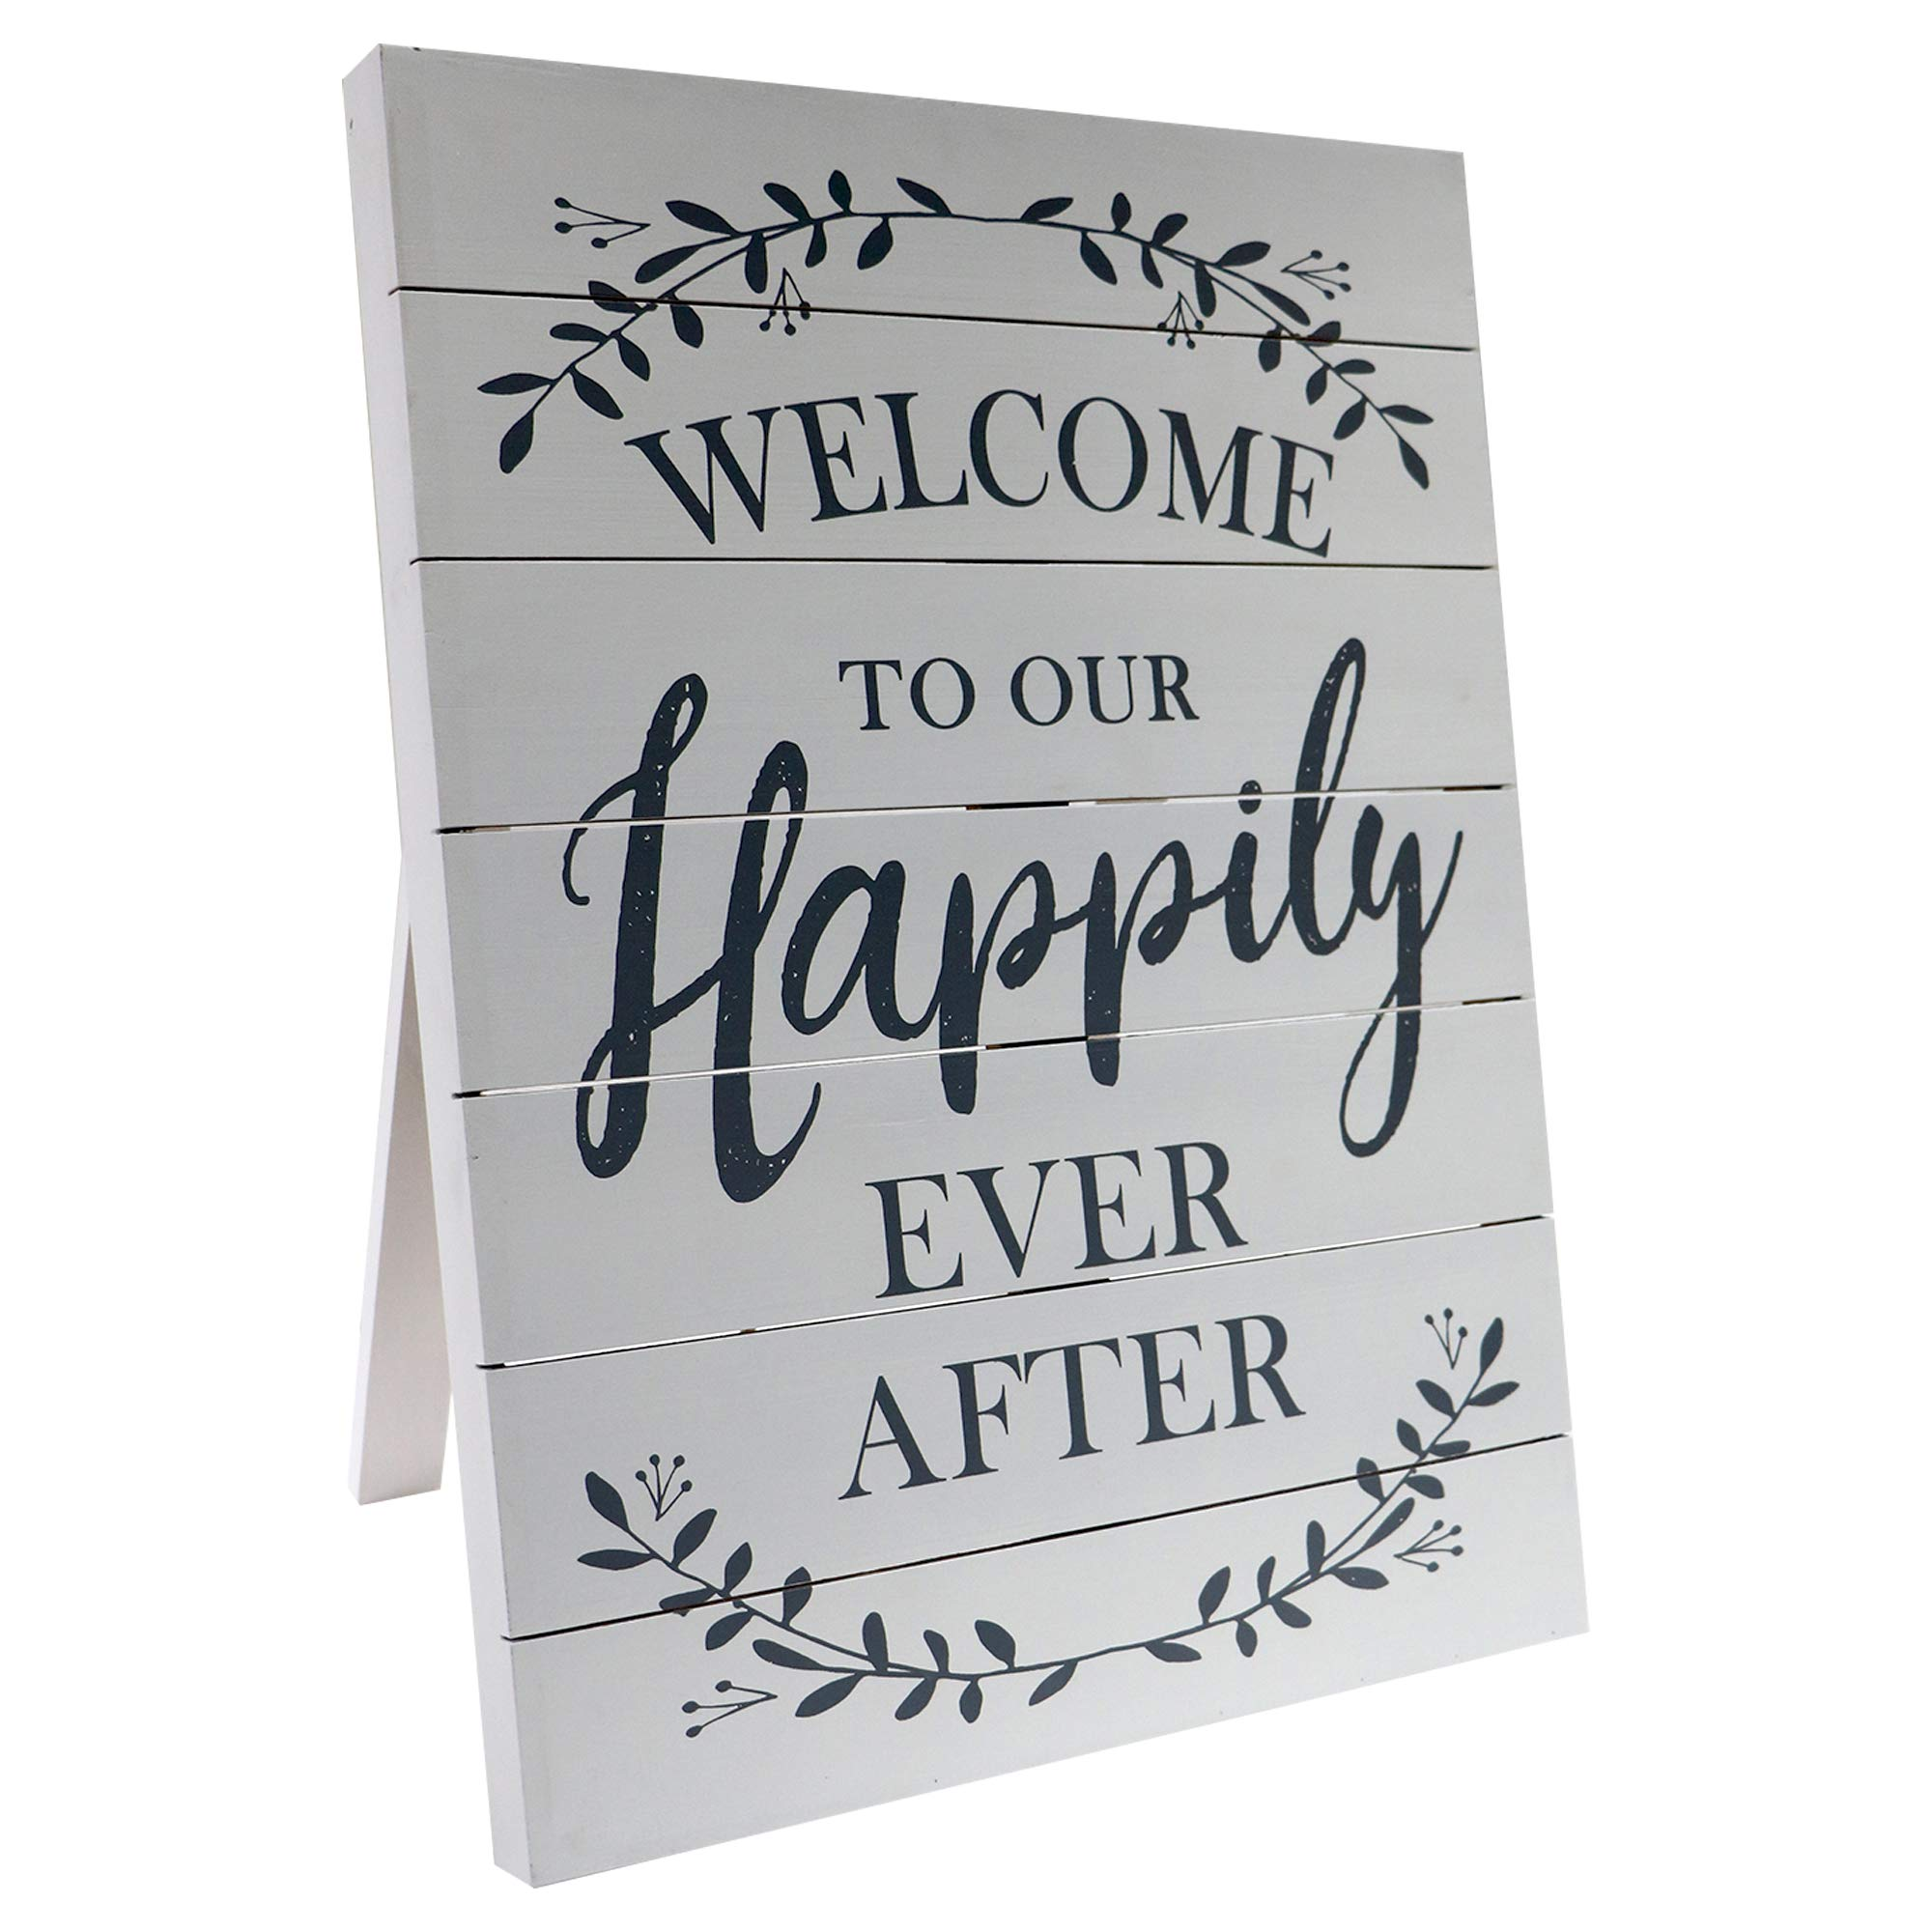 Barnyard Designs Welcome to Our Happily Ever After Sign Rustic Vintage Decor for Weddings and Home 23.5'' x 17.75'' by Barnyard Designs